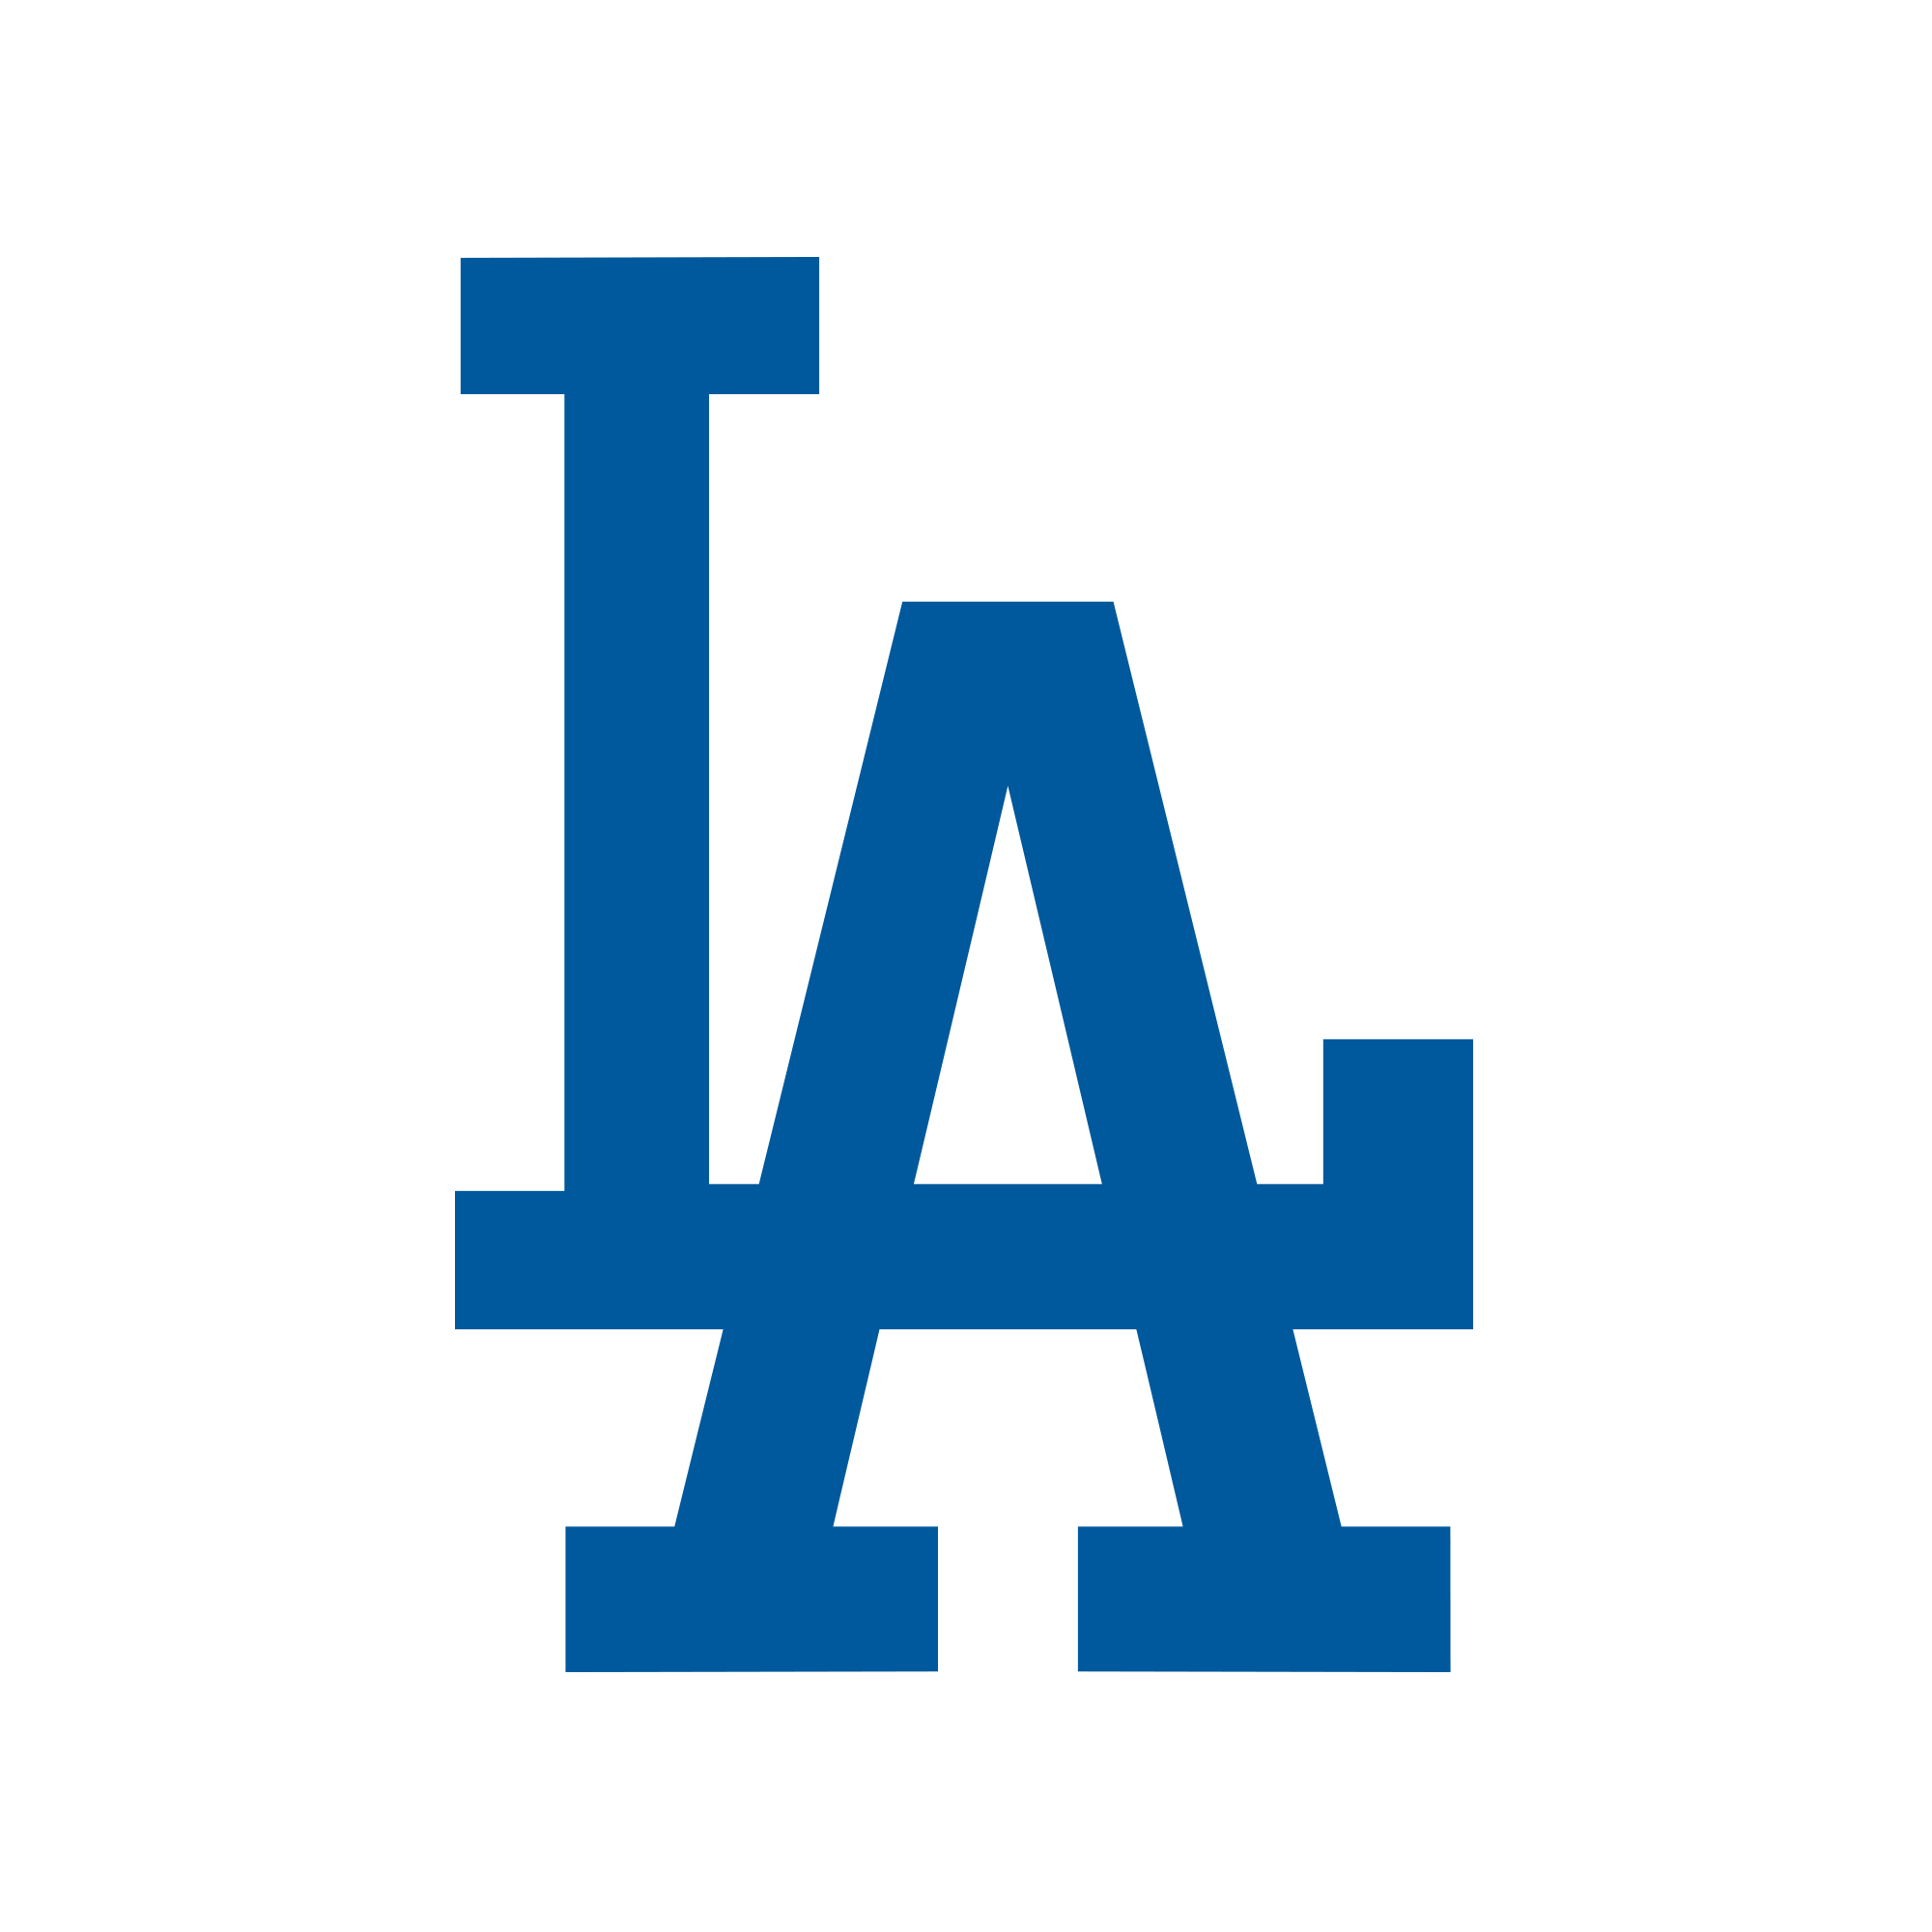 Cards continue to rule. Dodgers vector banner royalty free